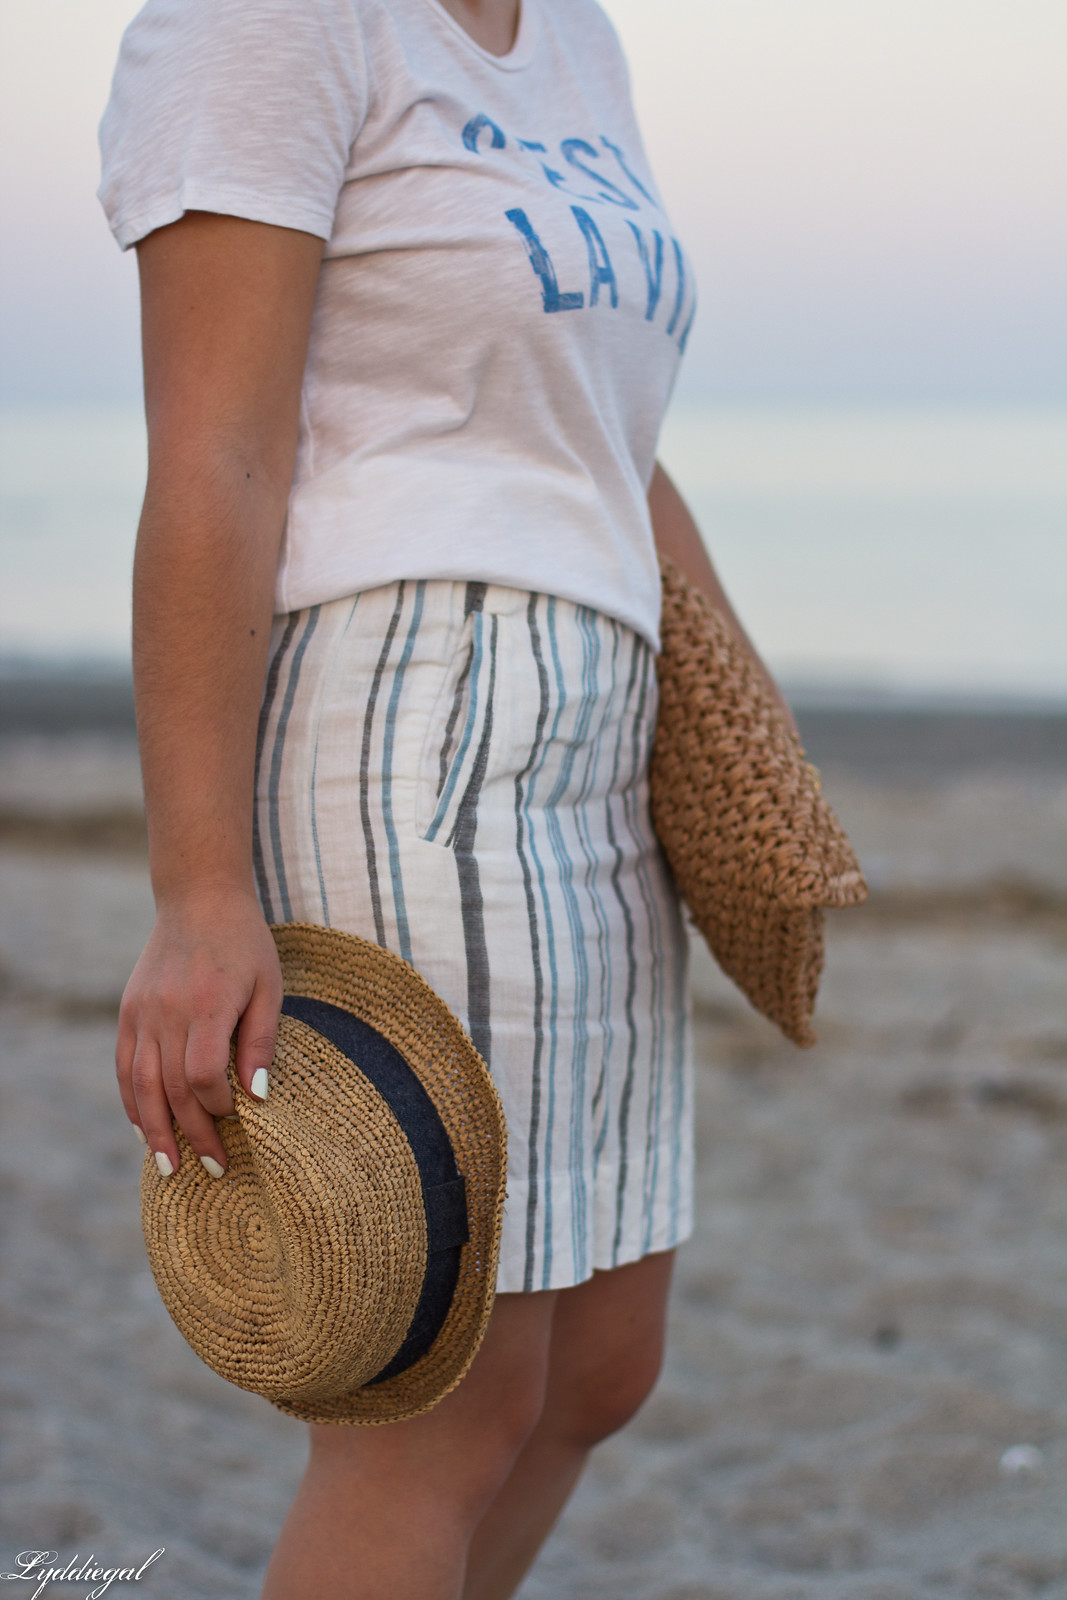 c'est la vie tee, striped linen skirt, straw fedora, clutch-6.jpg